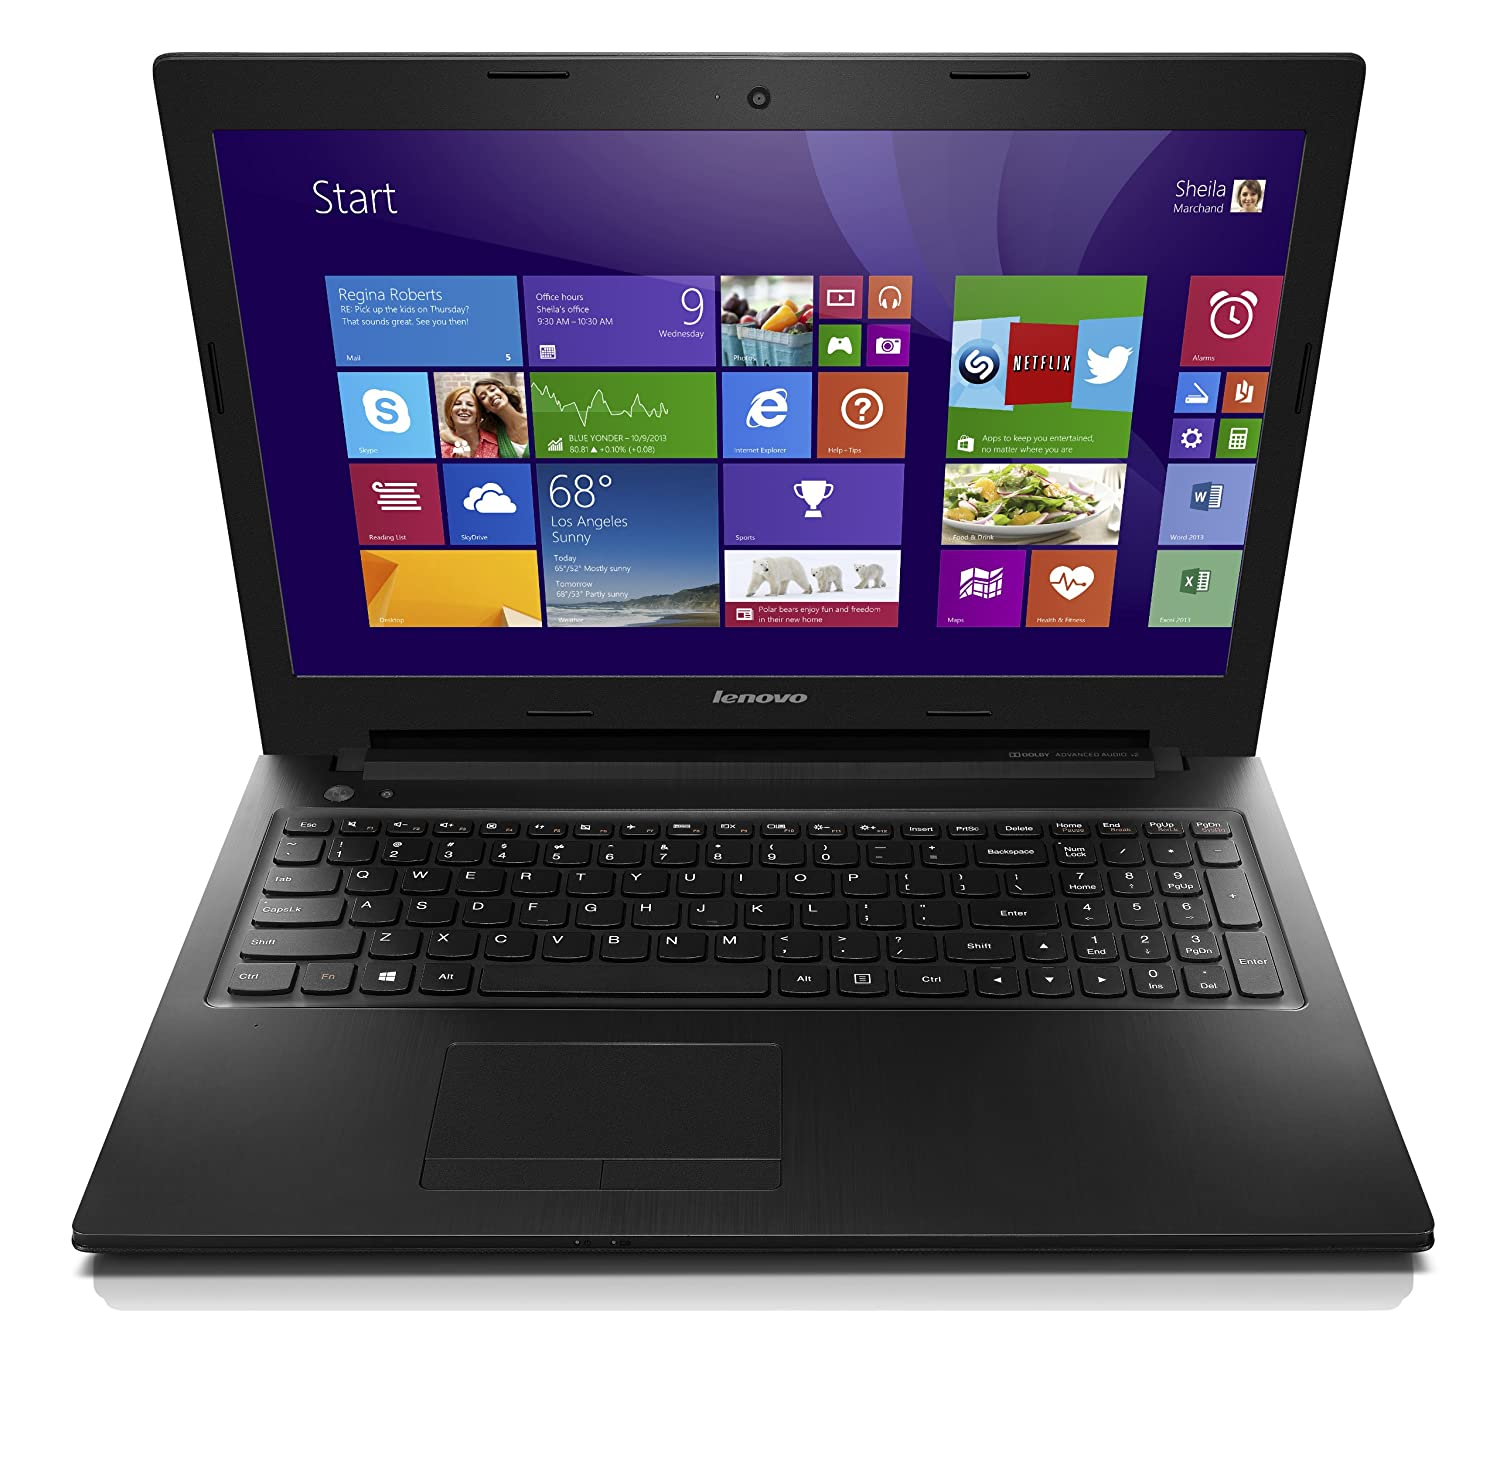 Lenovo IdeaPad G505s 59406417 15.6-Inch Laptop Black